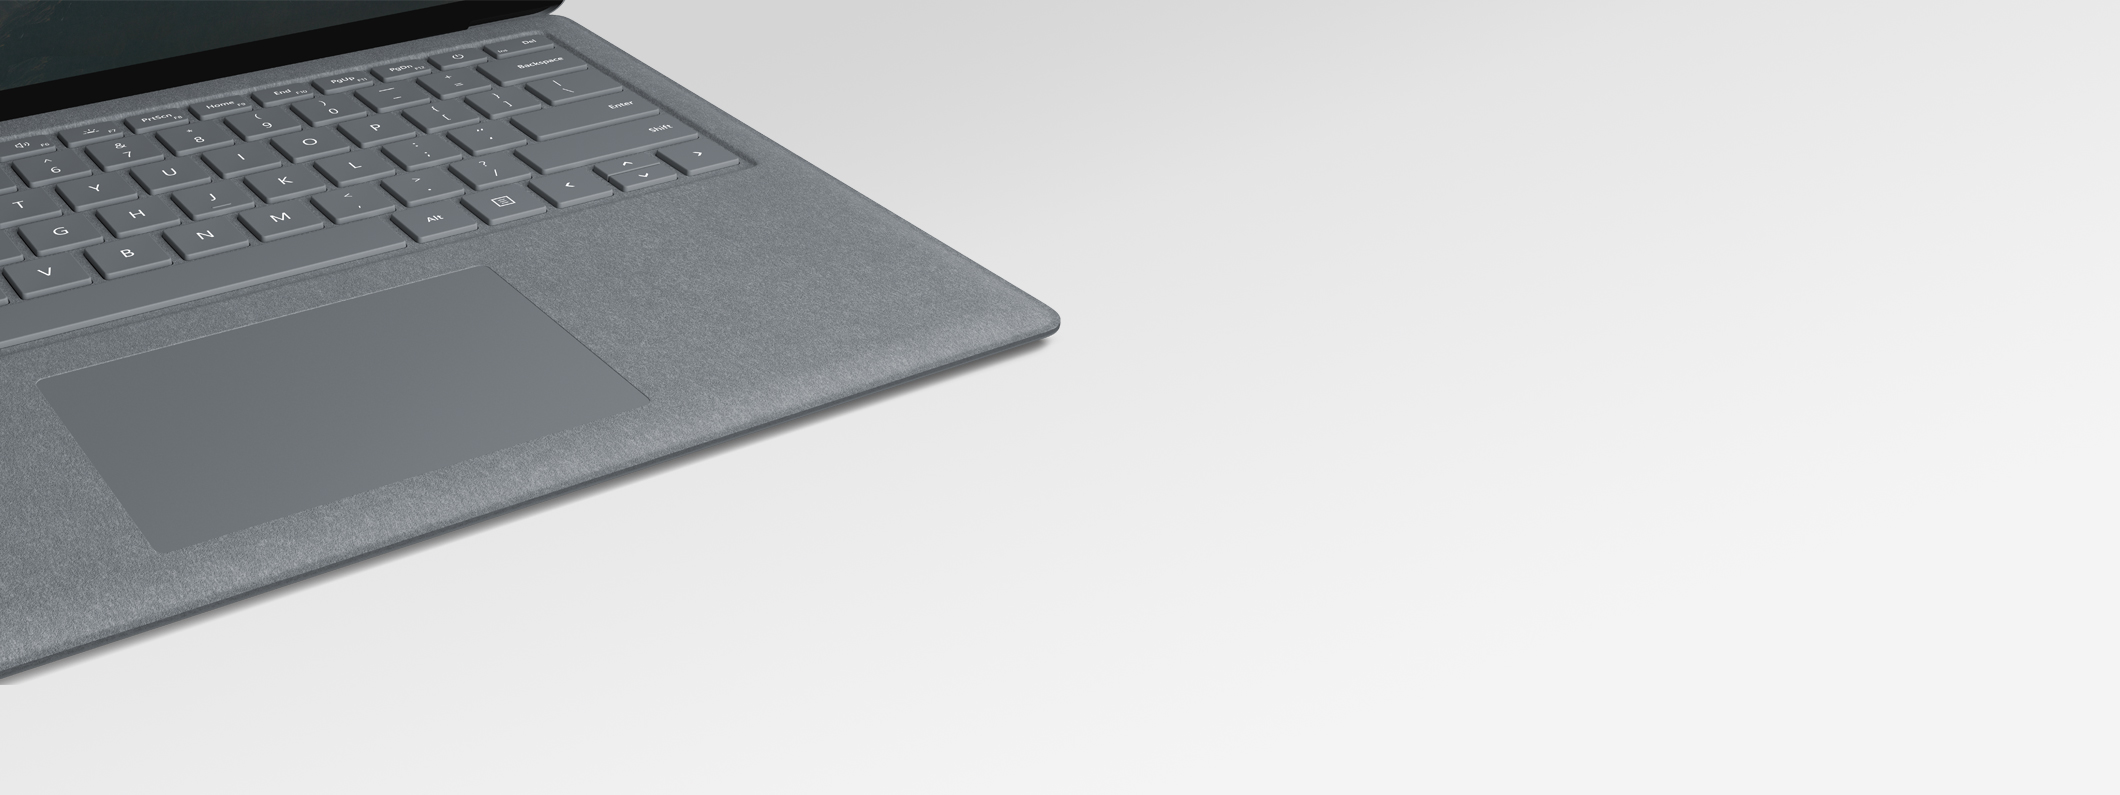 Surface Laptop 2-Tastatur und Trackpad